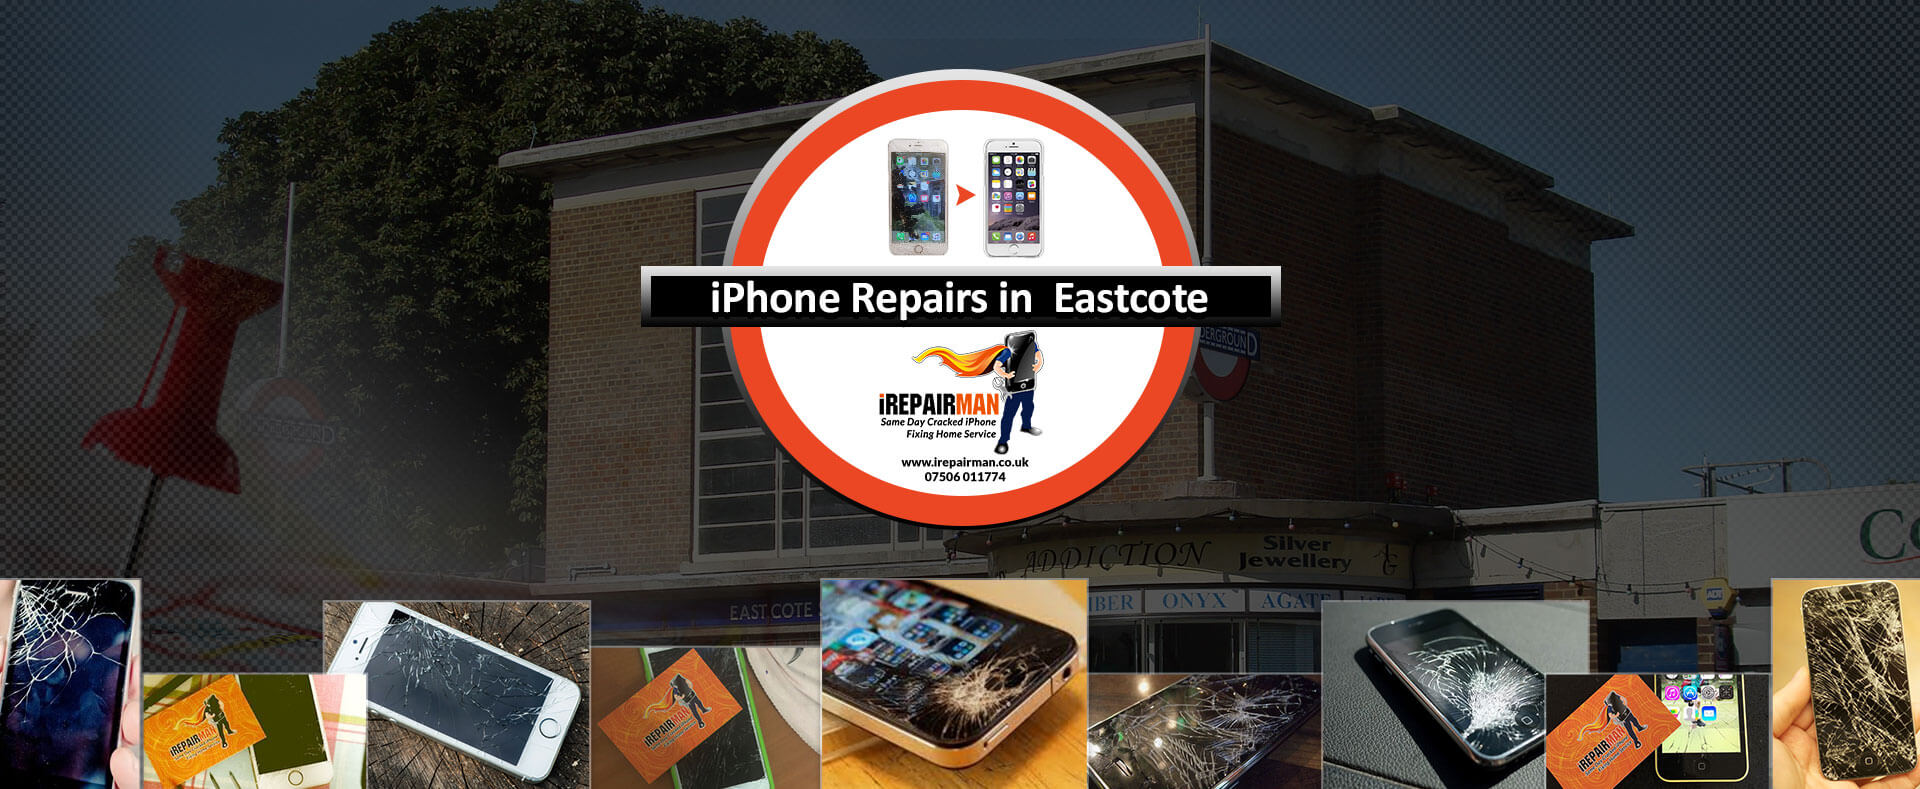 iPhone Repairs in Eastcote